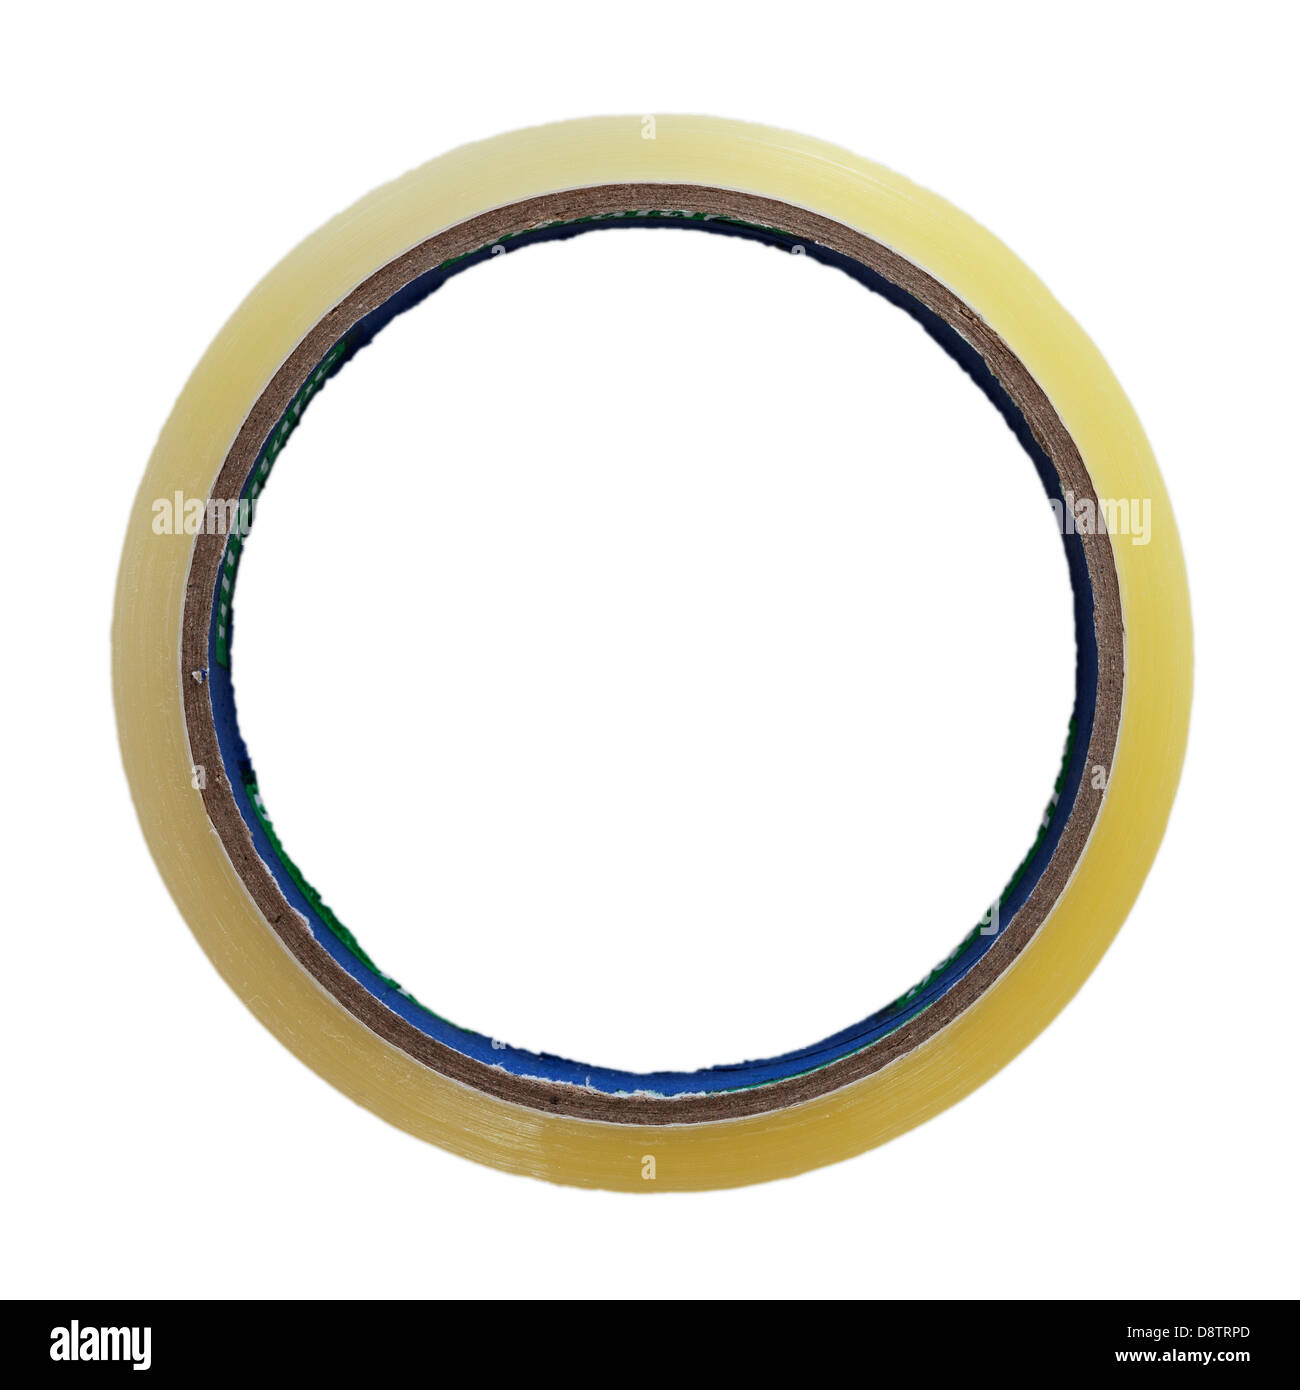 A roll of cellotape sticky tape on a white background - Stock Image